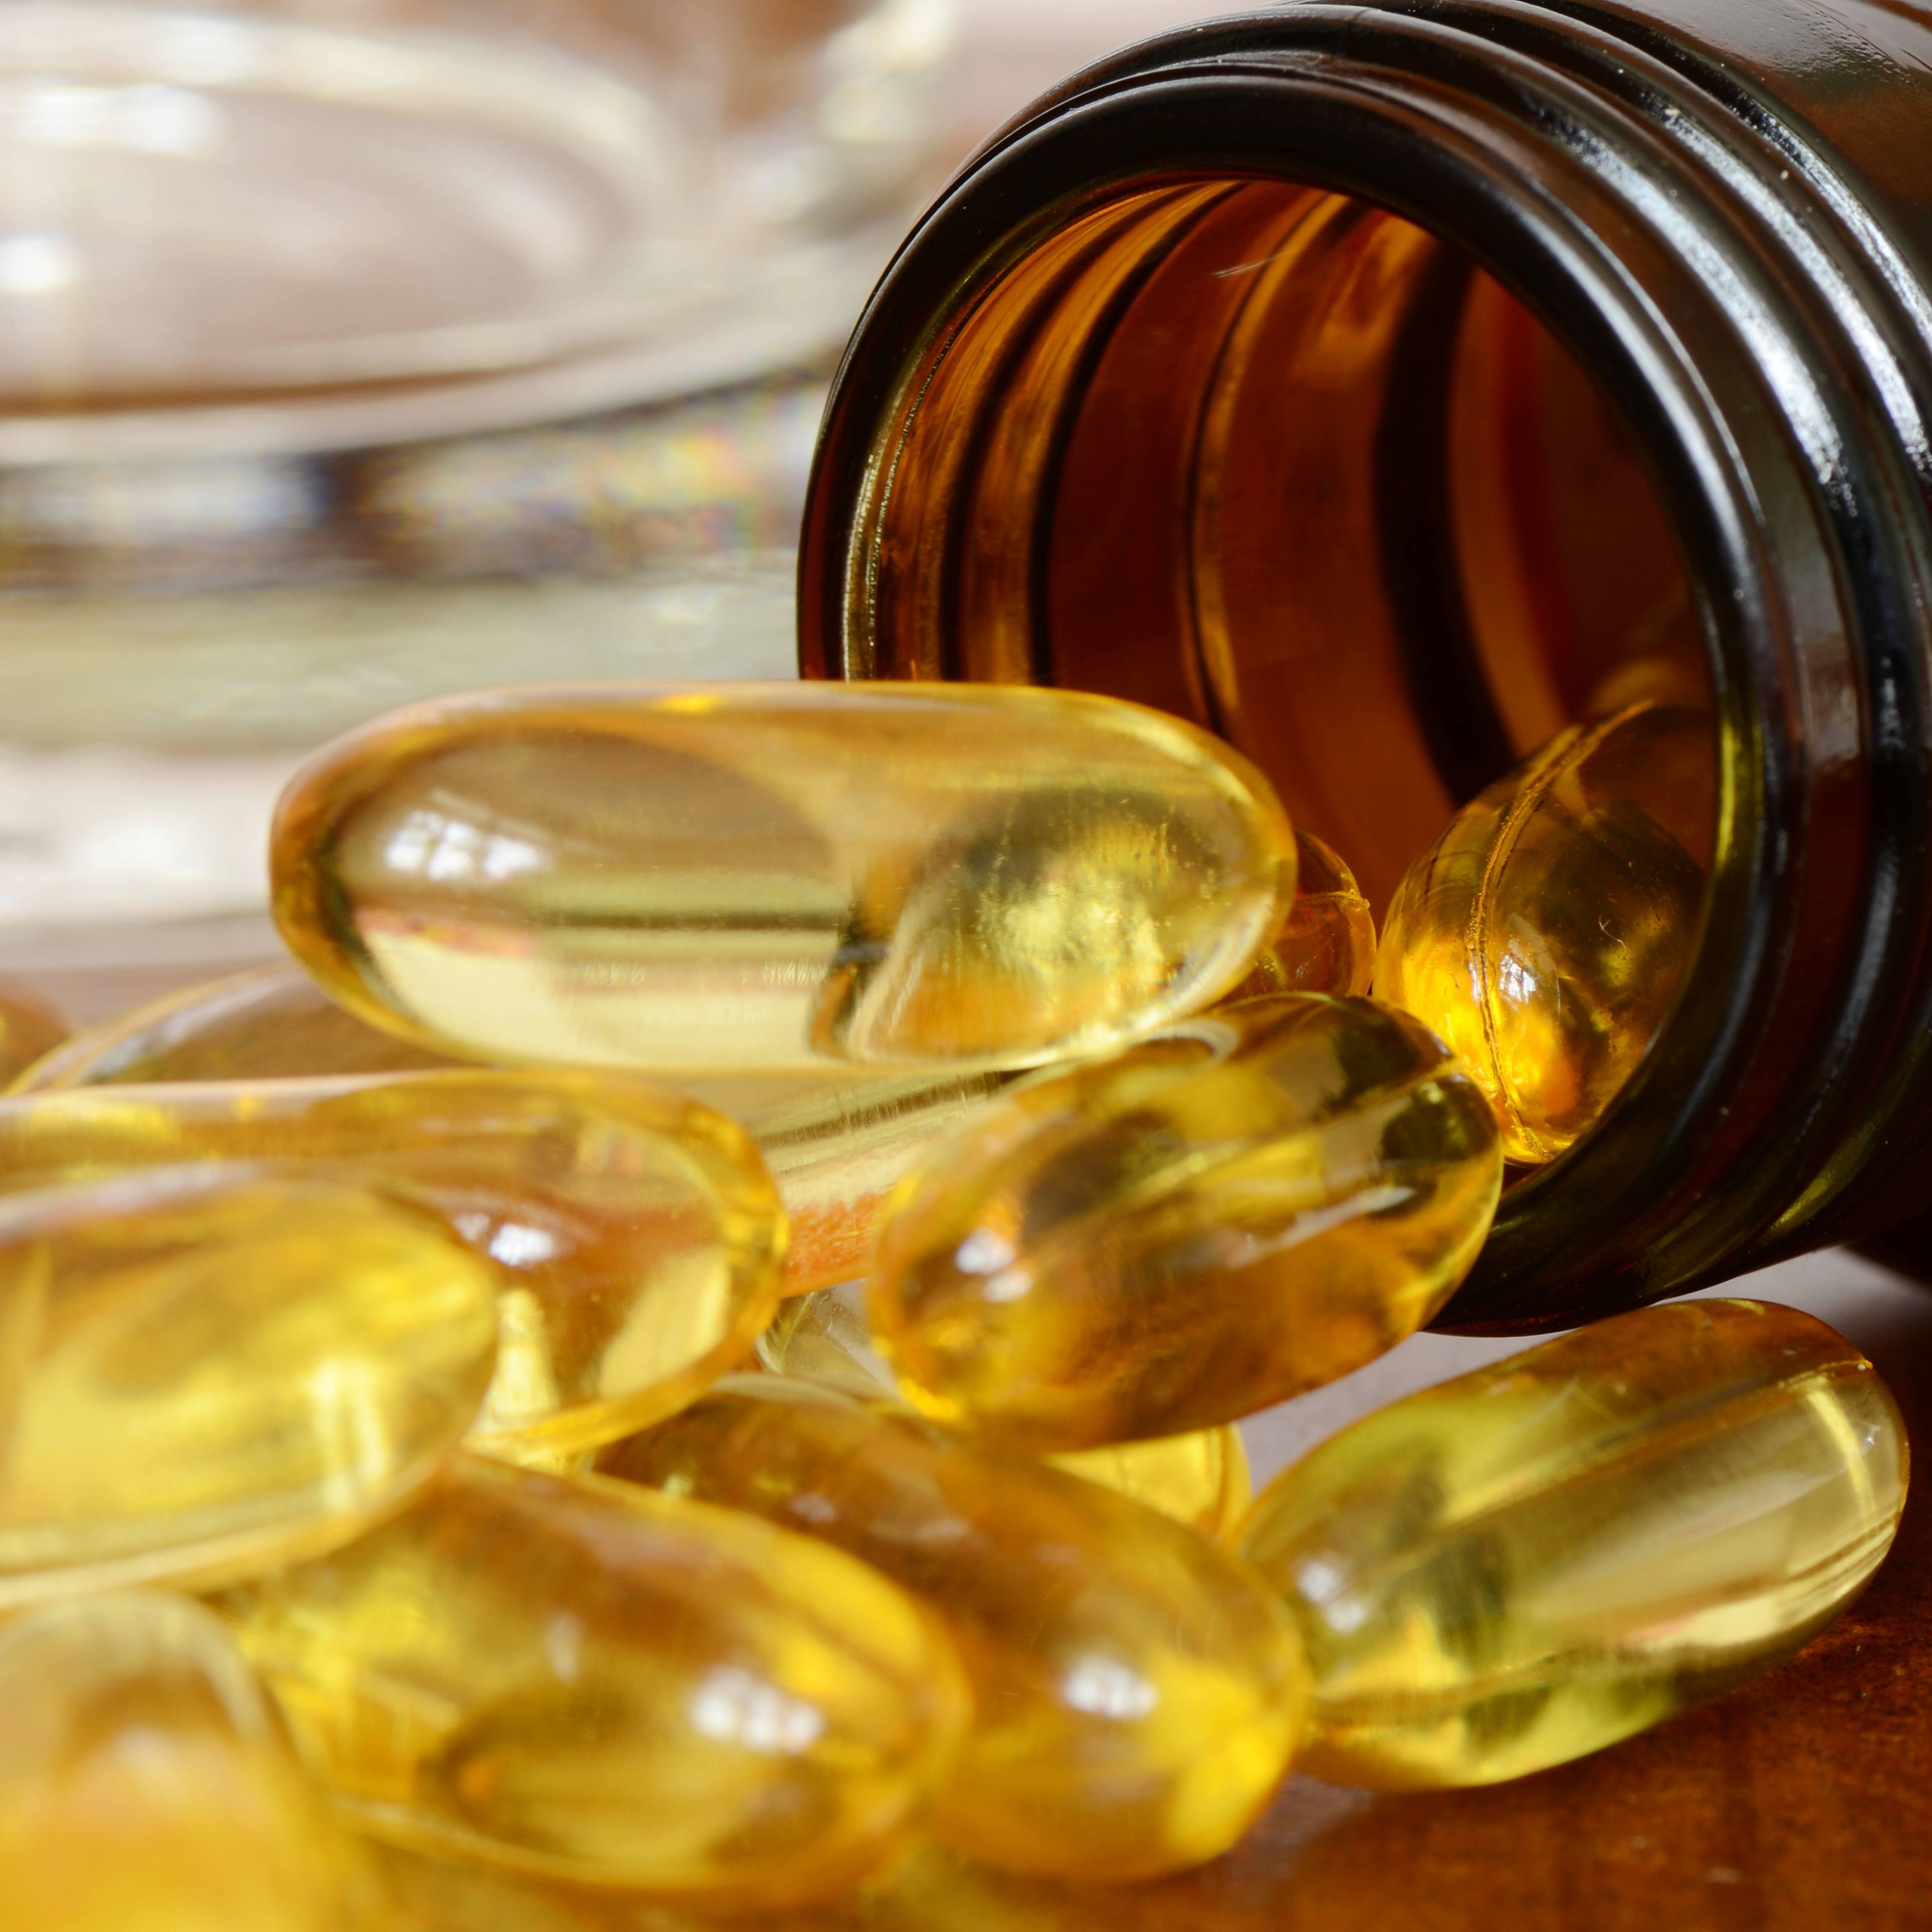 soft gelatin dietary supplement oil capsules spilling out of a bottle